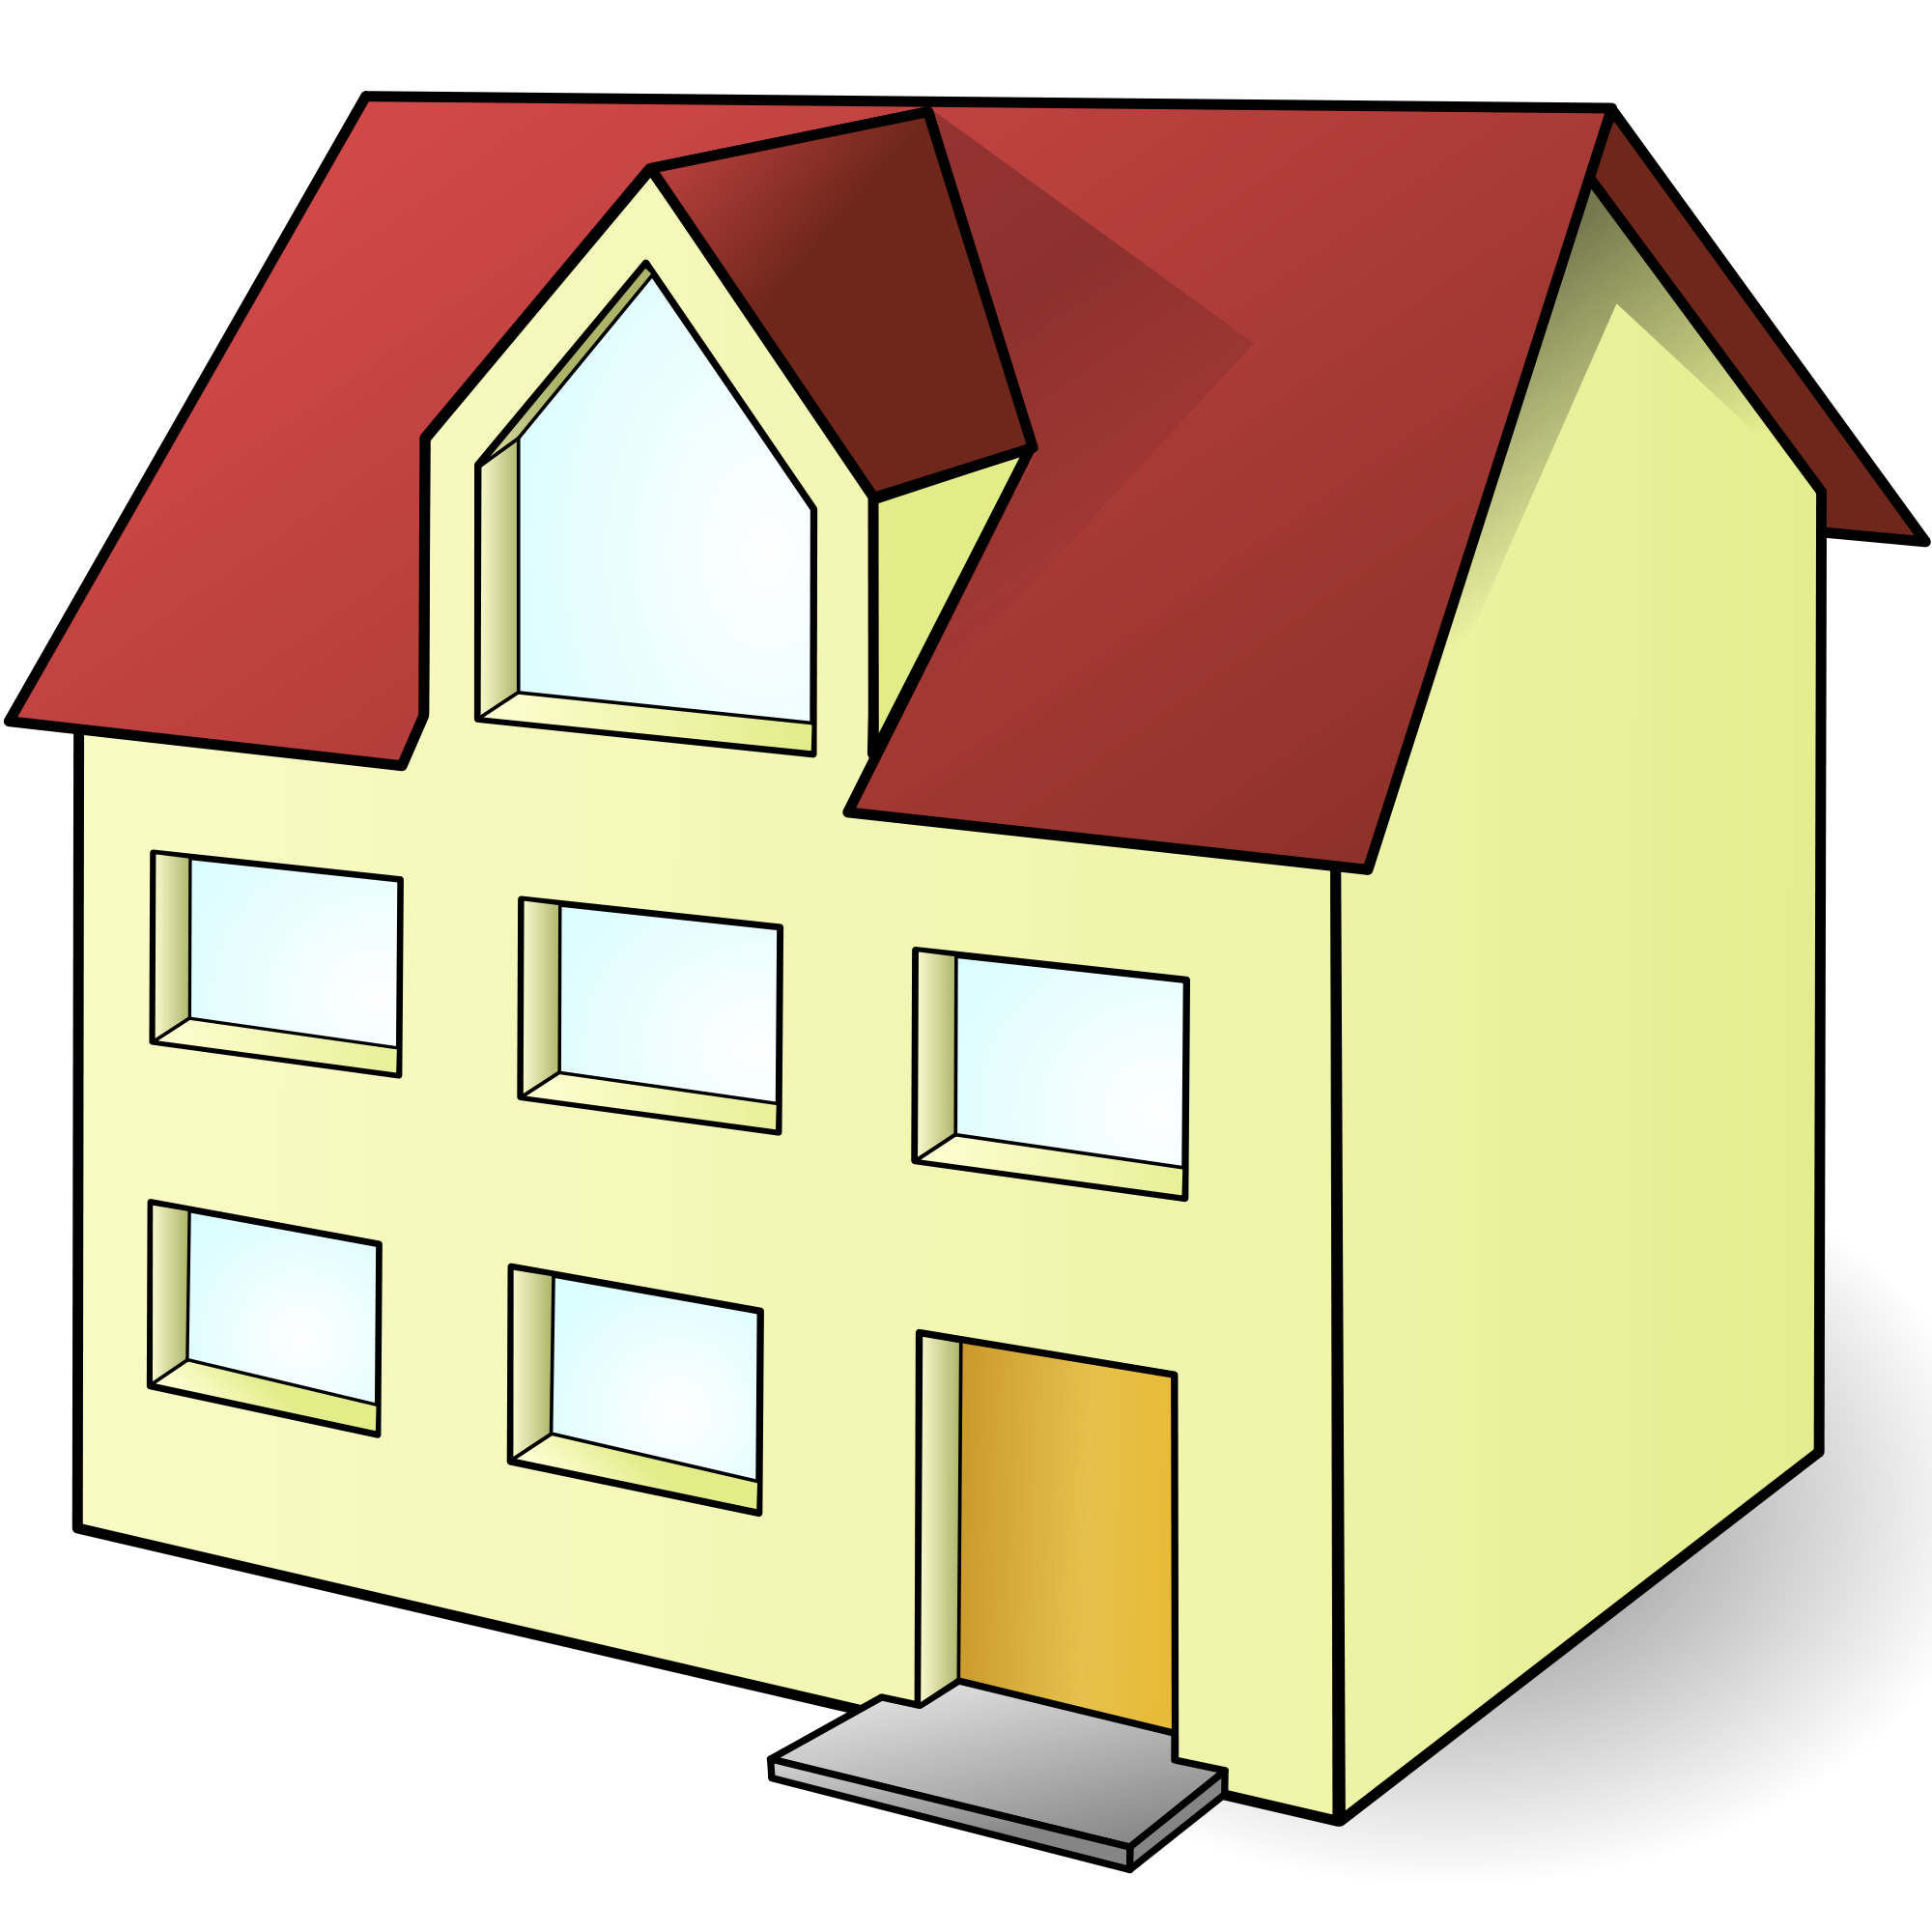 Two story house clipart png graphic royalty free library File:House christoph brill 01.svg - Wikimedia Commons graphic royalty free library